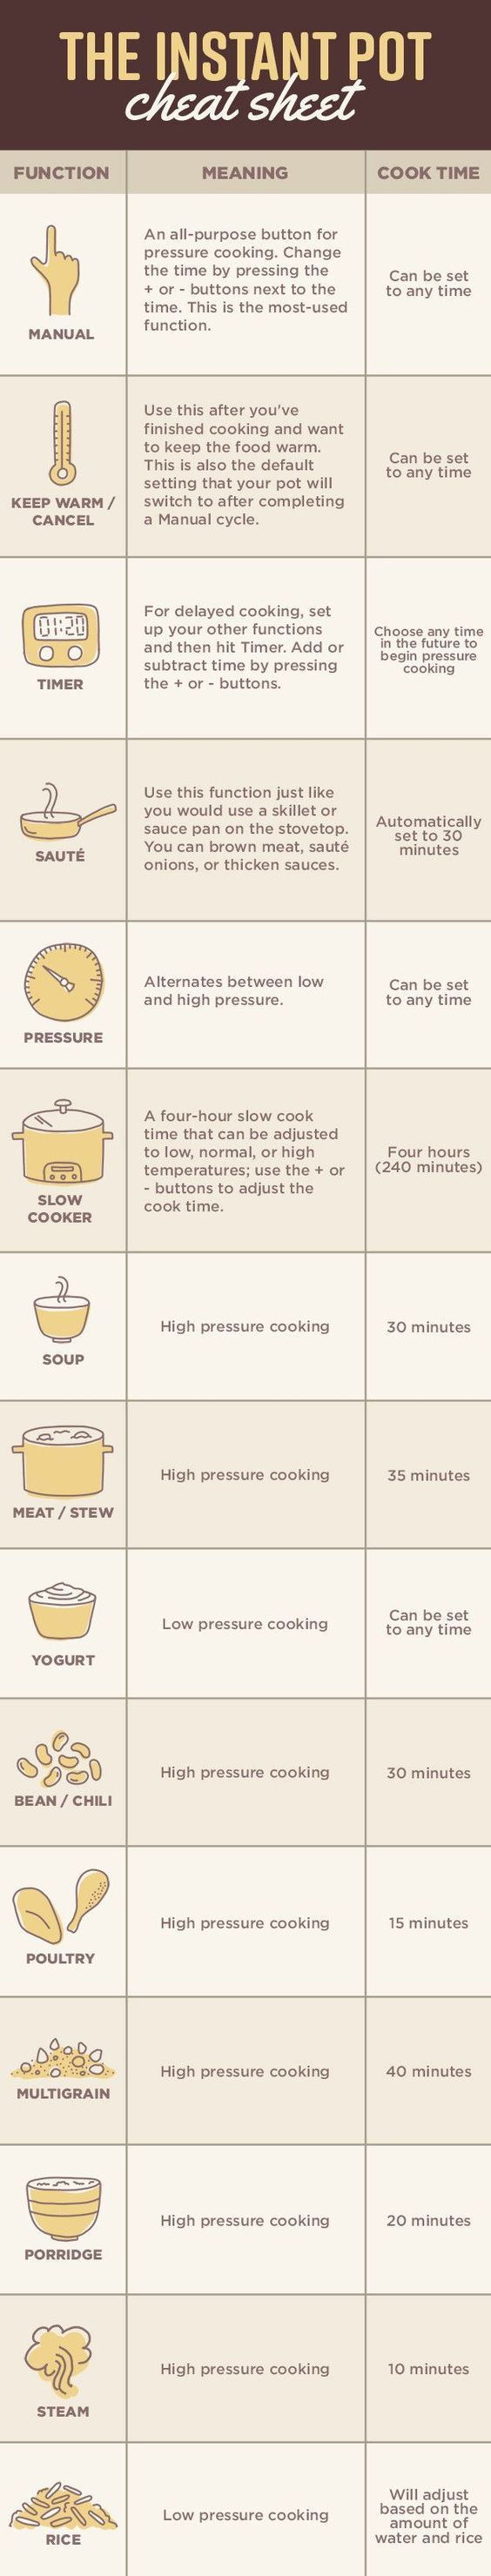 17 Instant Pot Tips For Beginners is part of Instant pot recipes, Pot recipes, Instant pot, Electric pressure cooker recipes, Instant pot pressure cooker, Pot - All the hacks and tips you need to get started